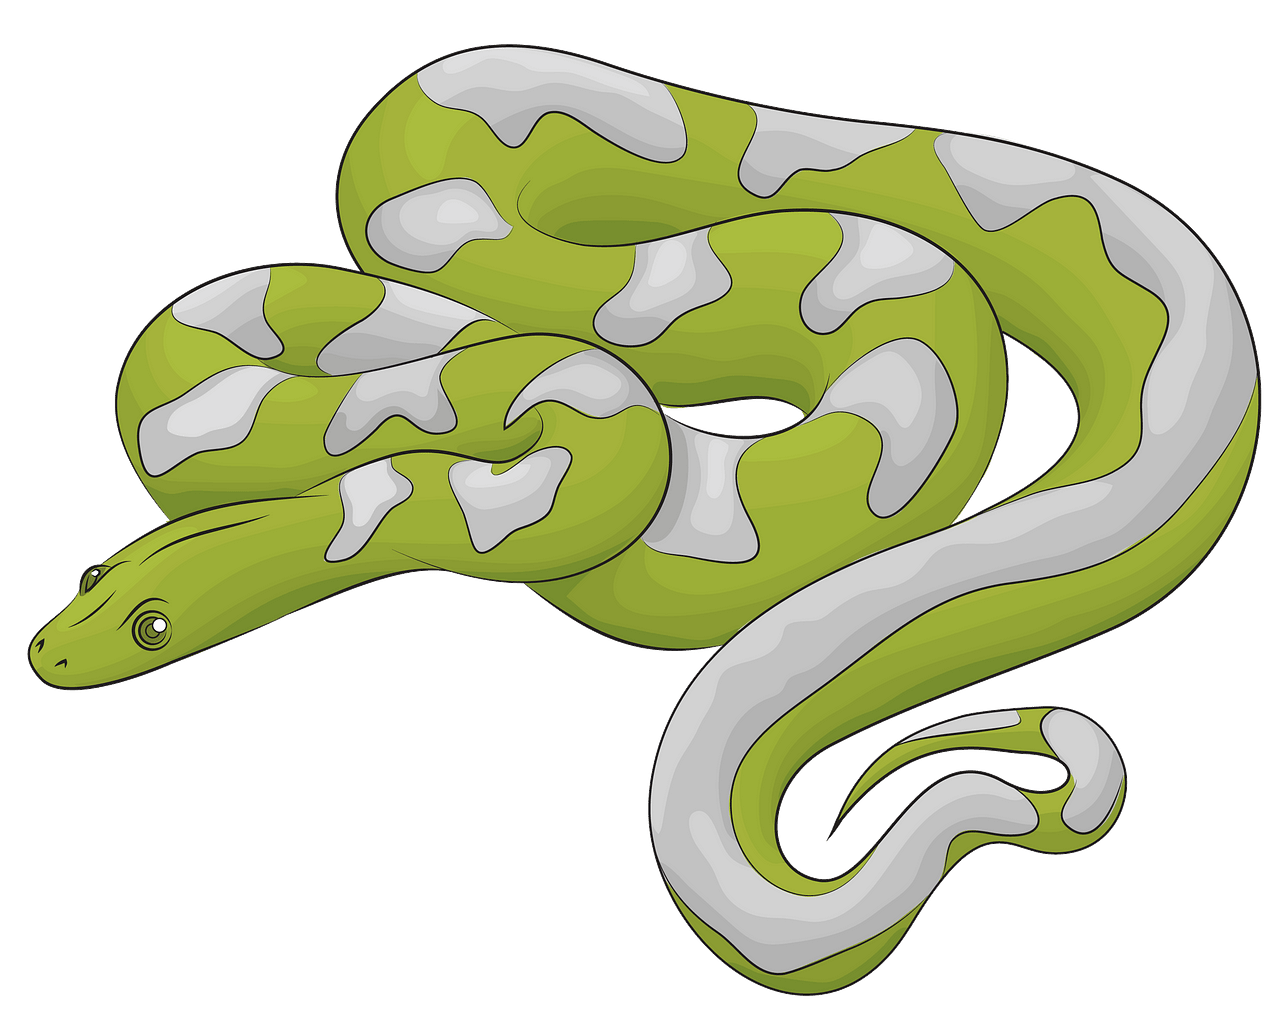 Boa Snake clipart. Free download..